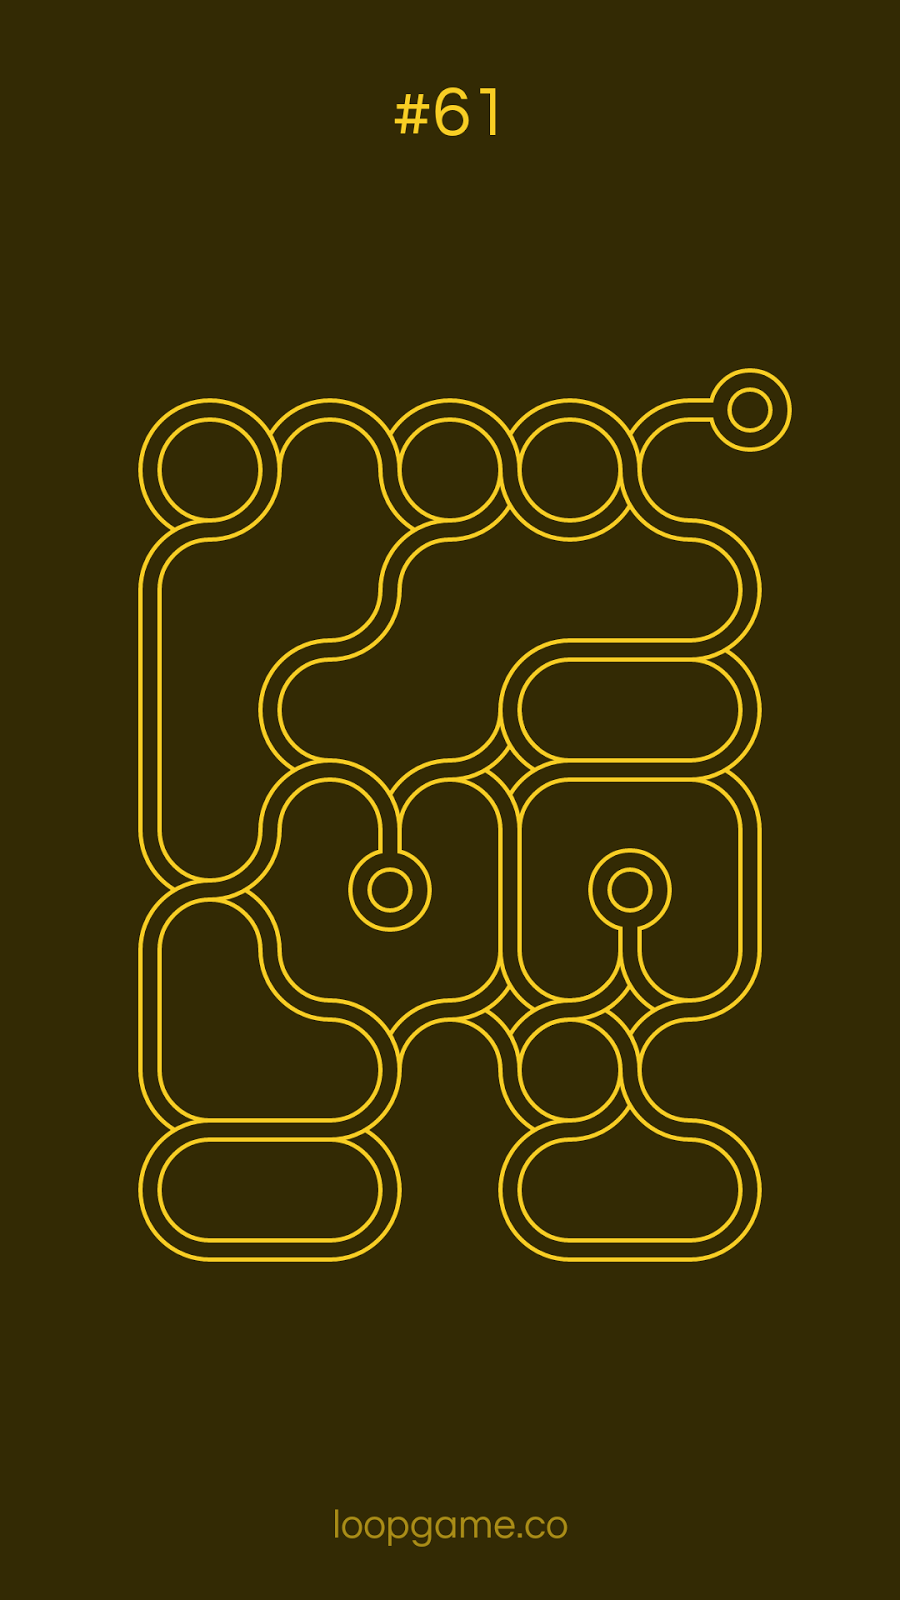 infinity loops level 61 solution